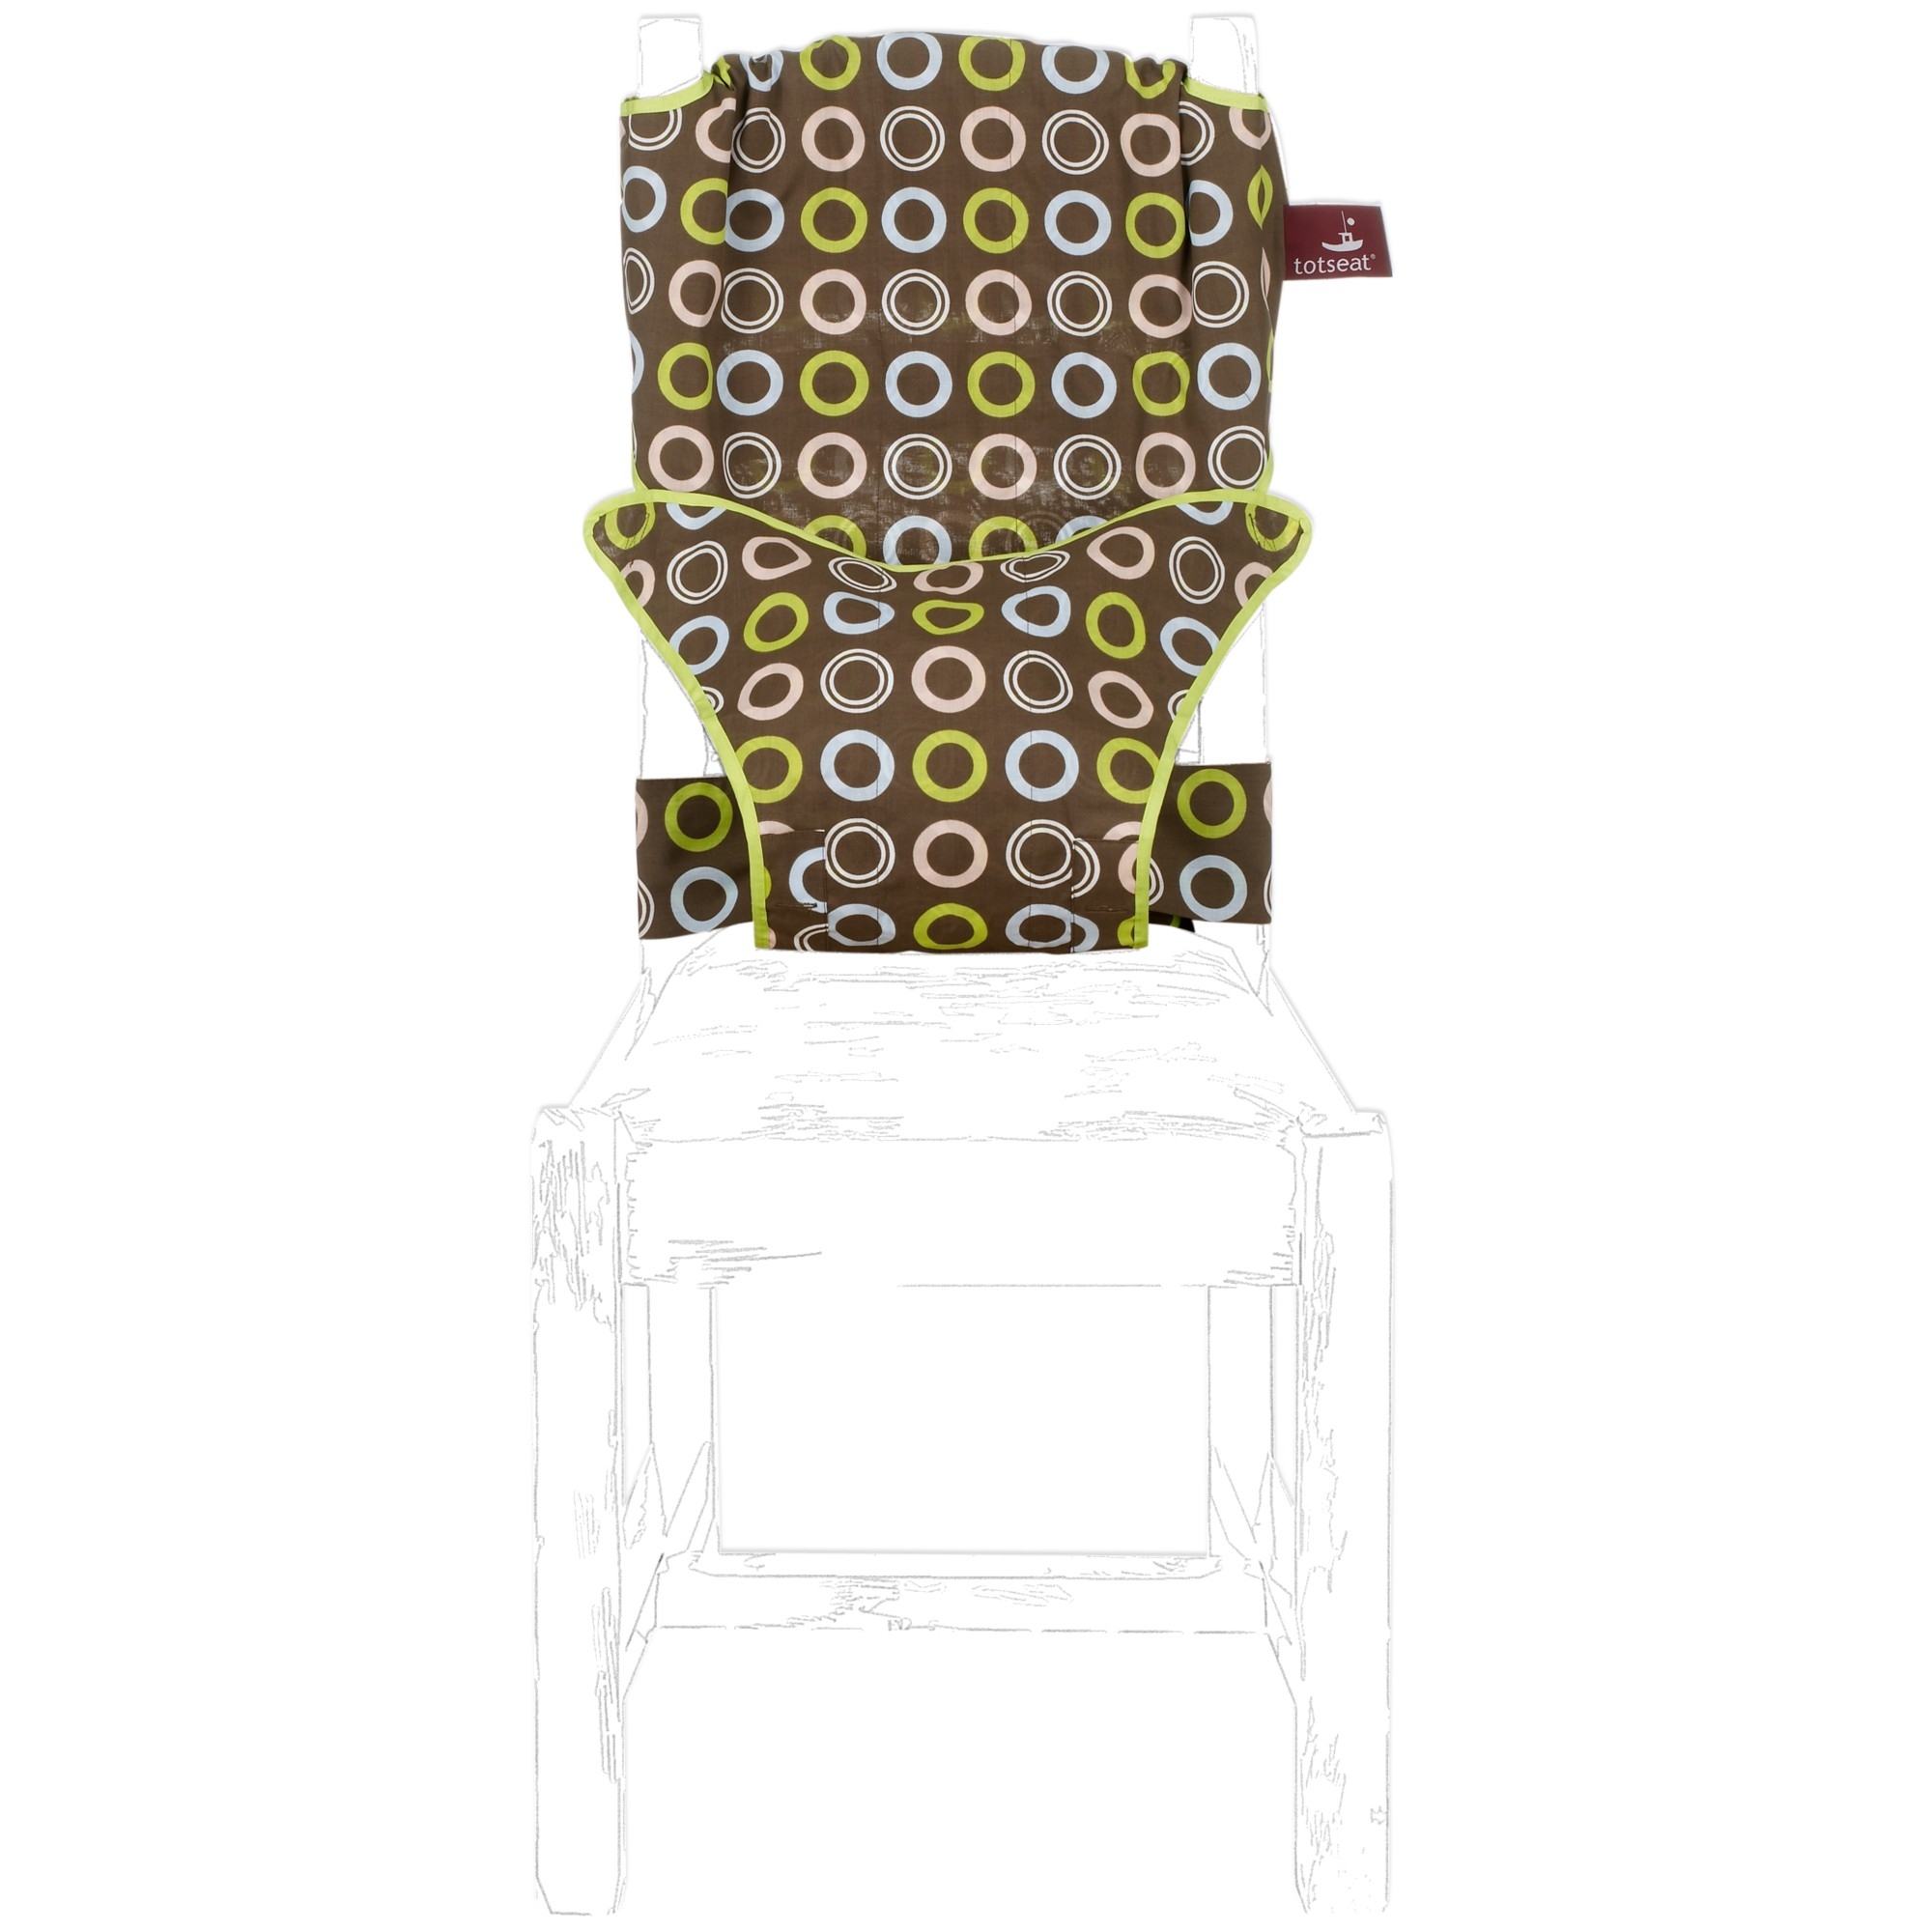 Totseat Portable Baby Seat